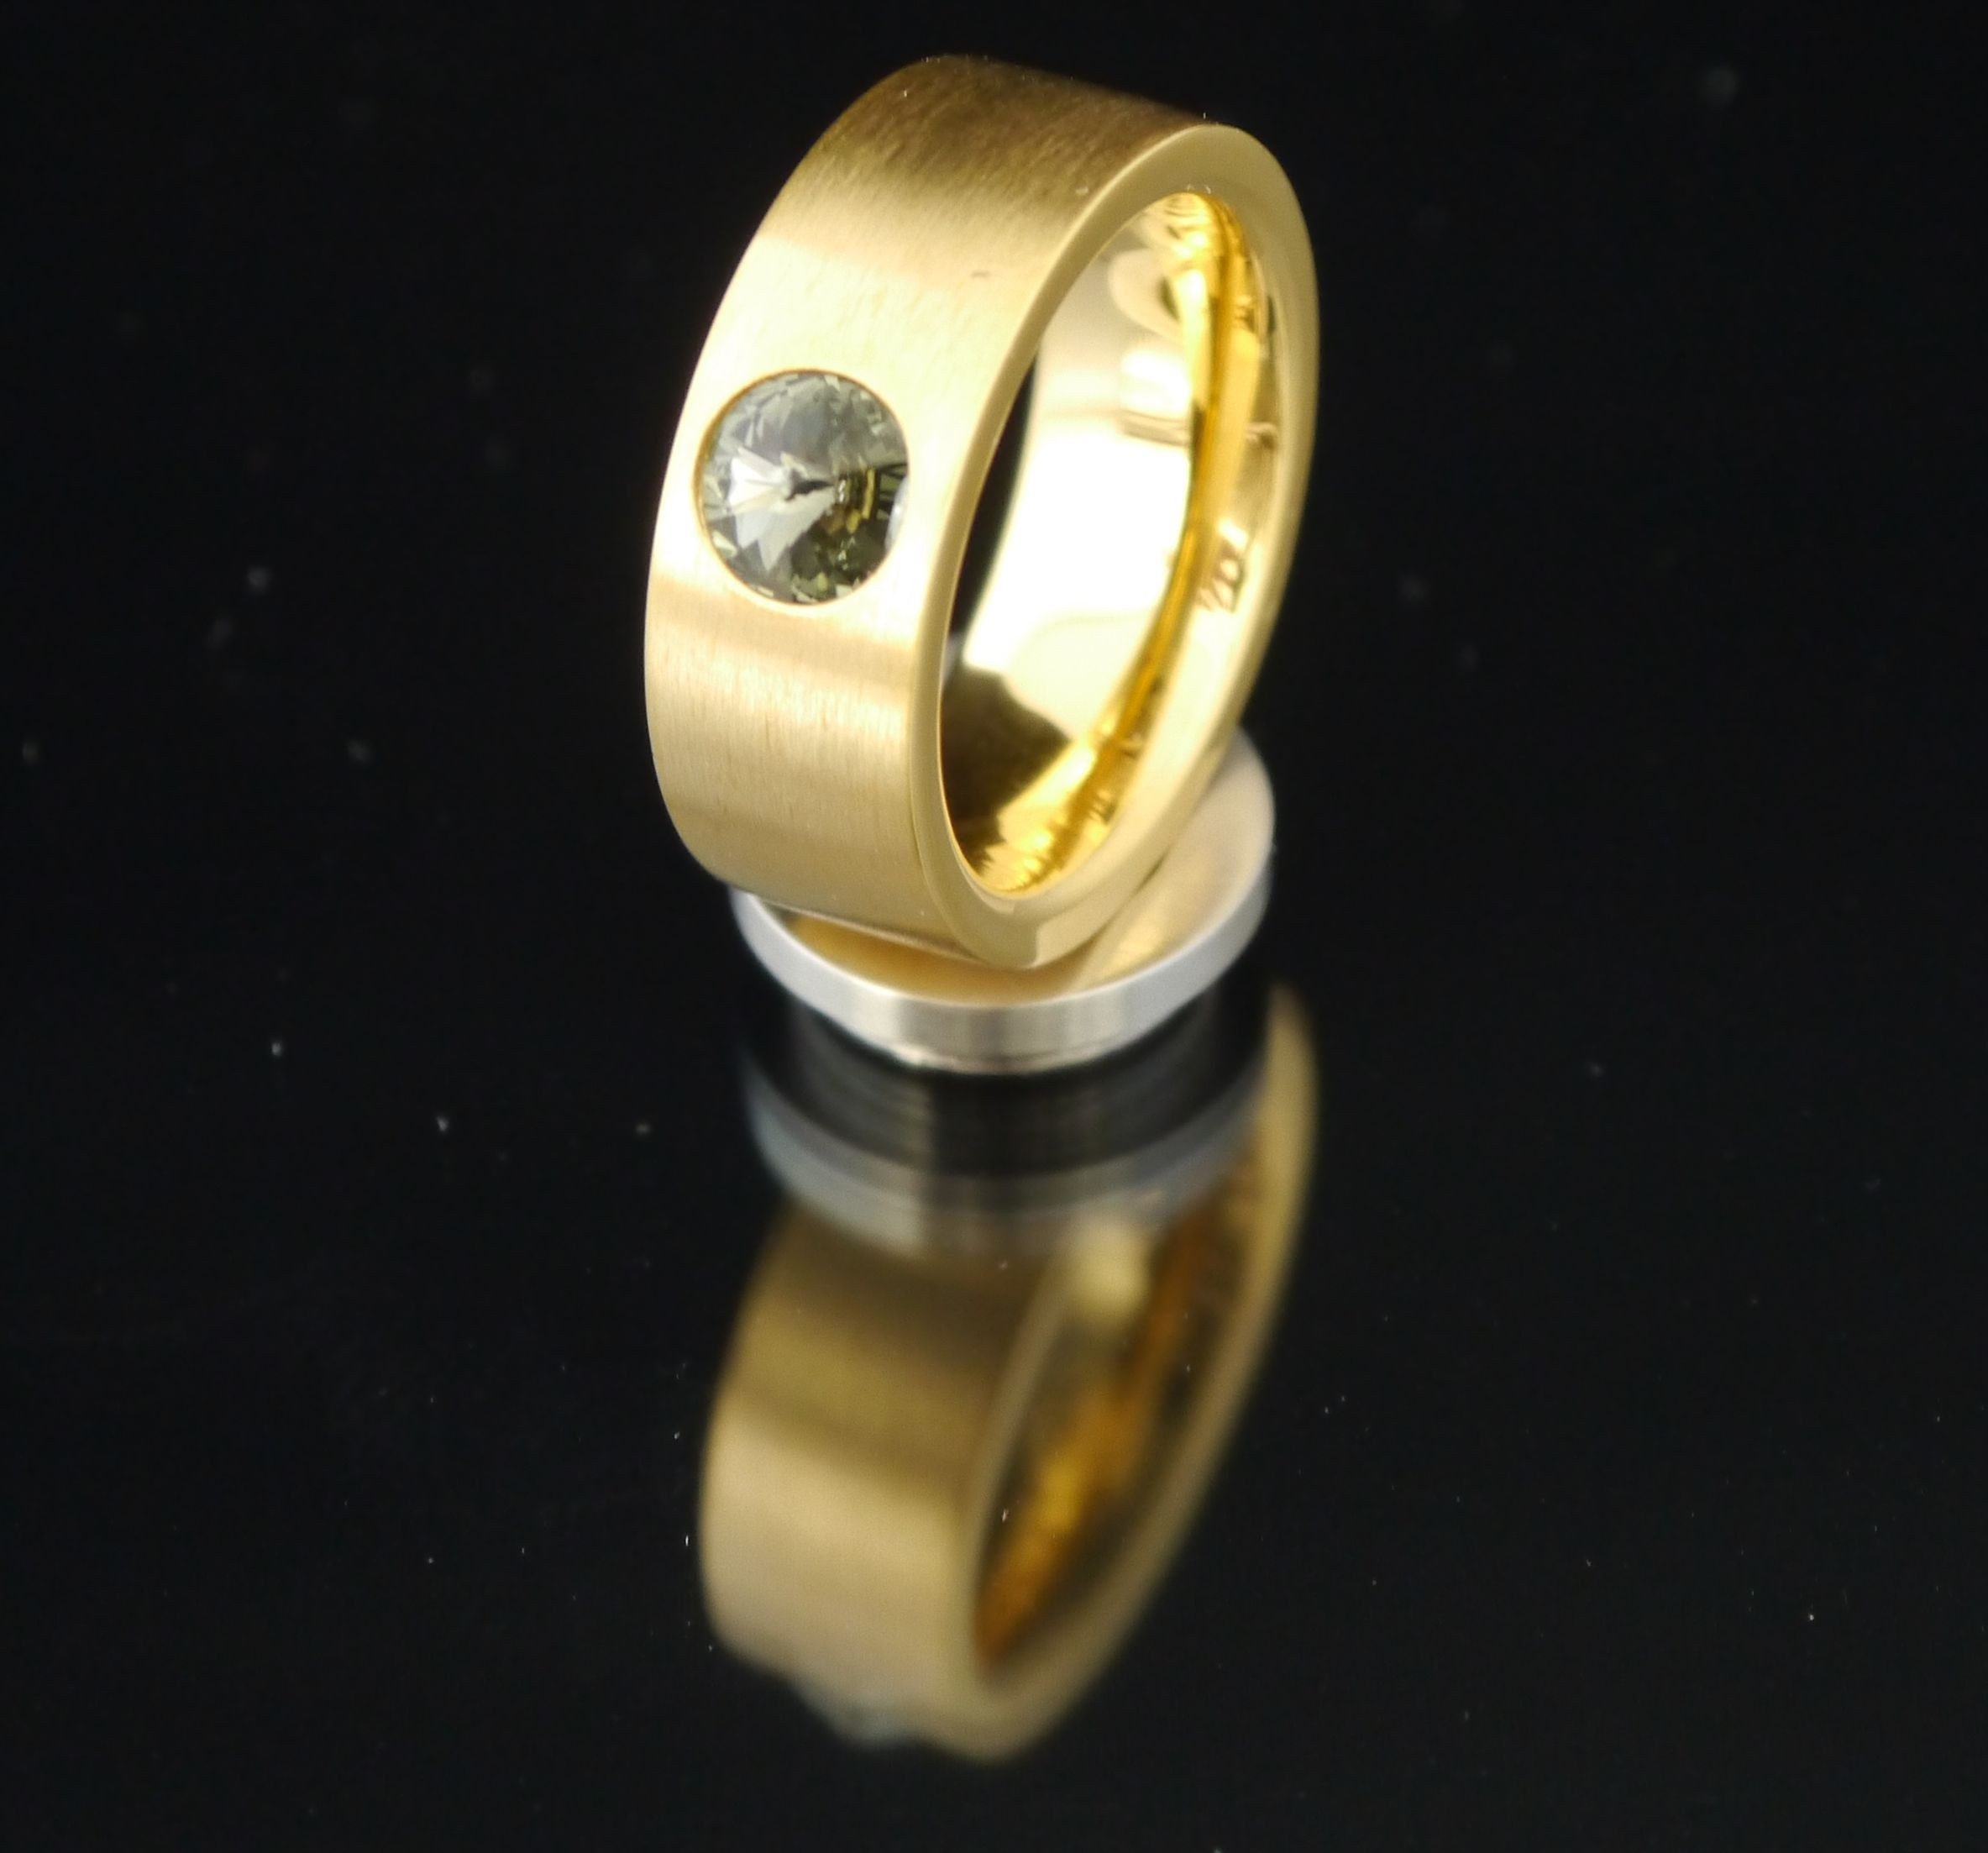 8mm PVD Gold Edelstahlring mit Swarovski Elements Fb. Black Diamond